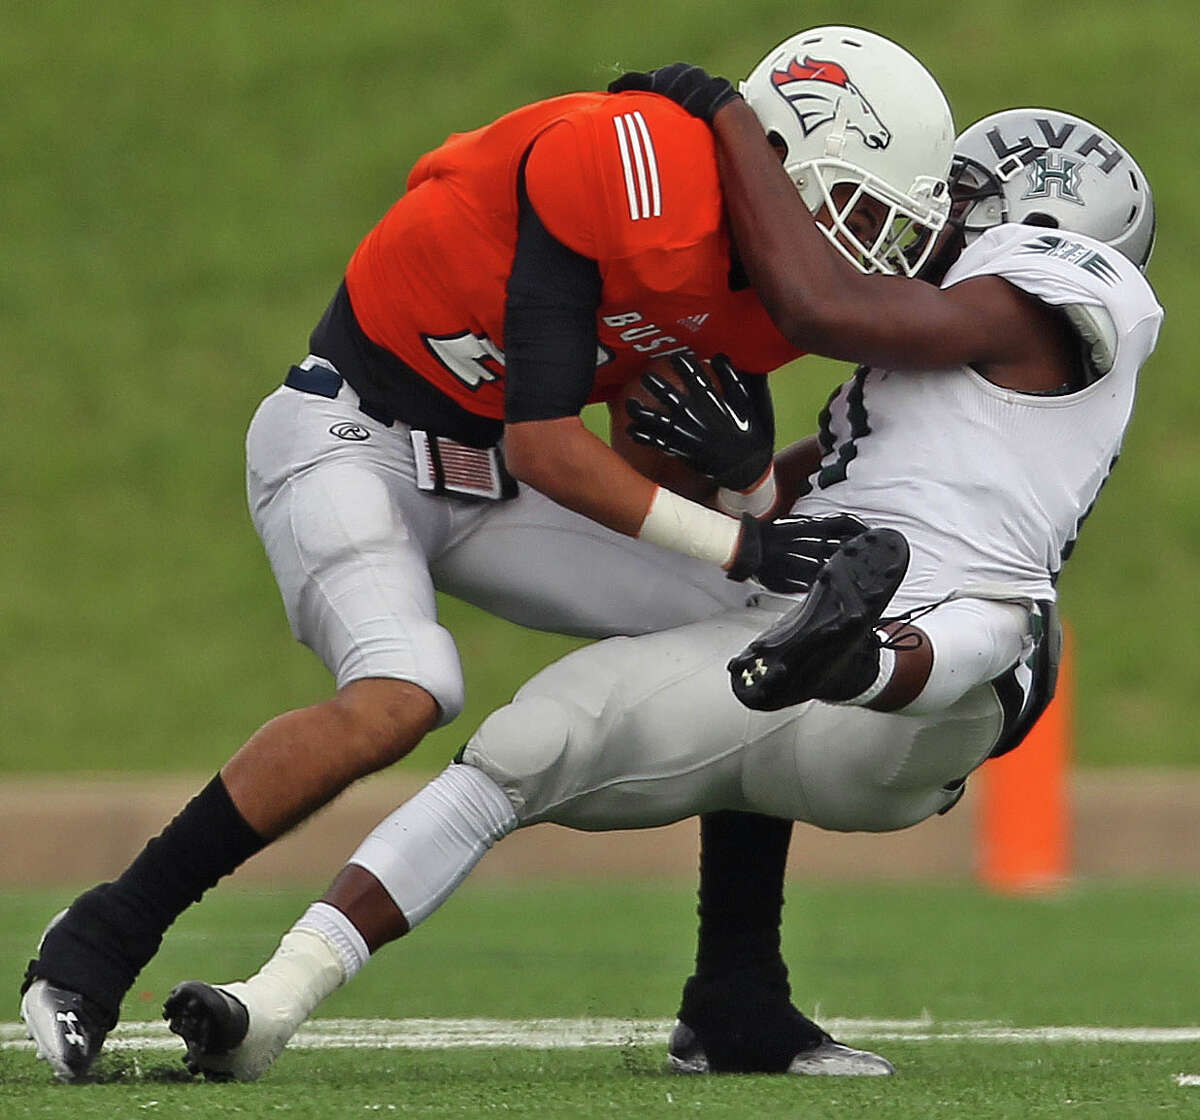 Bush's Donald Monroe, left, is tackled by Hightower's Jowl Williams during the first half of a high school football game, Saturday, November 9, 2013, at Mercer Stadium in Sugar Land.